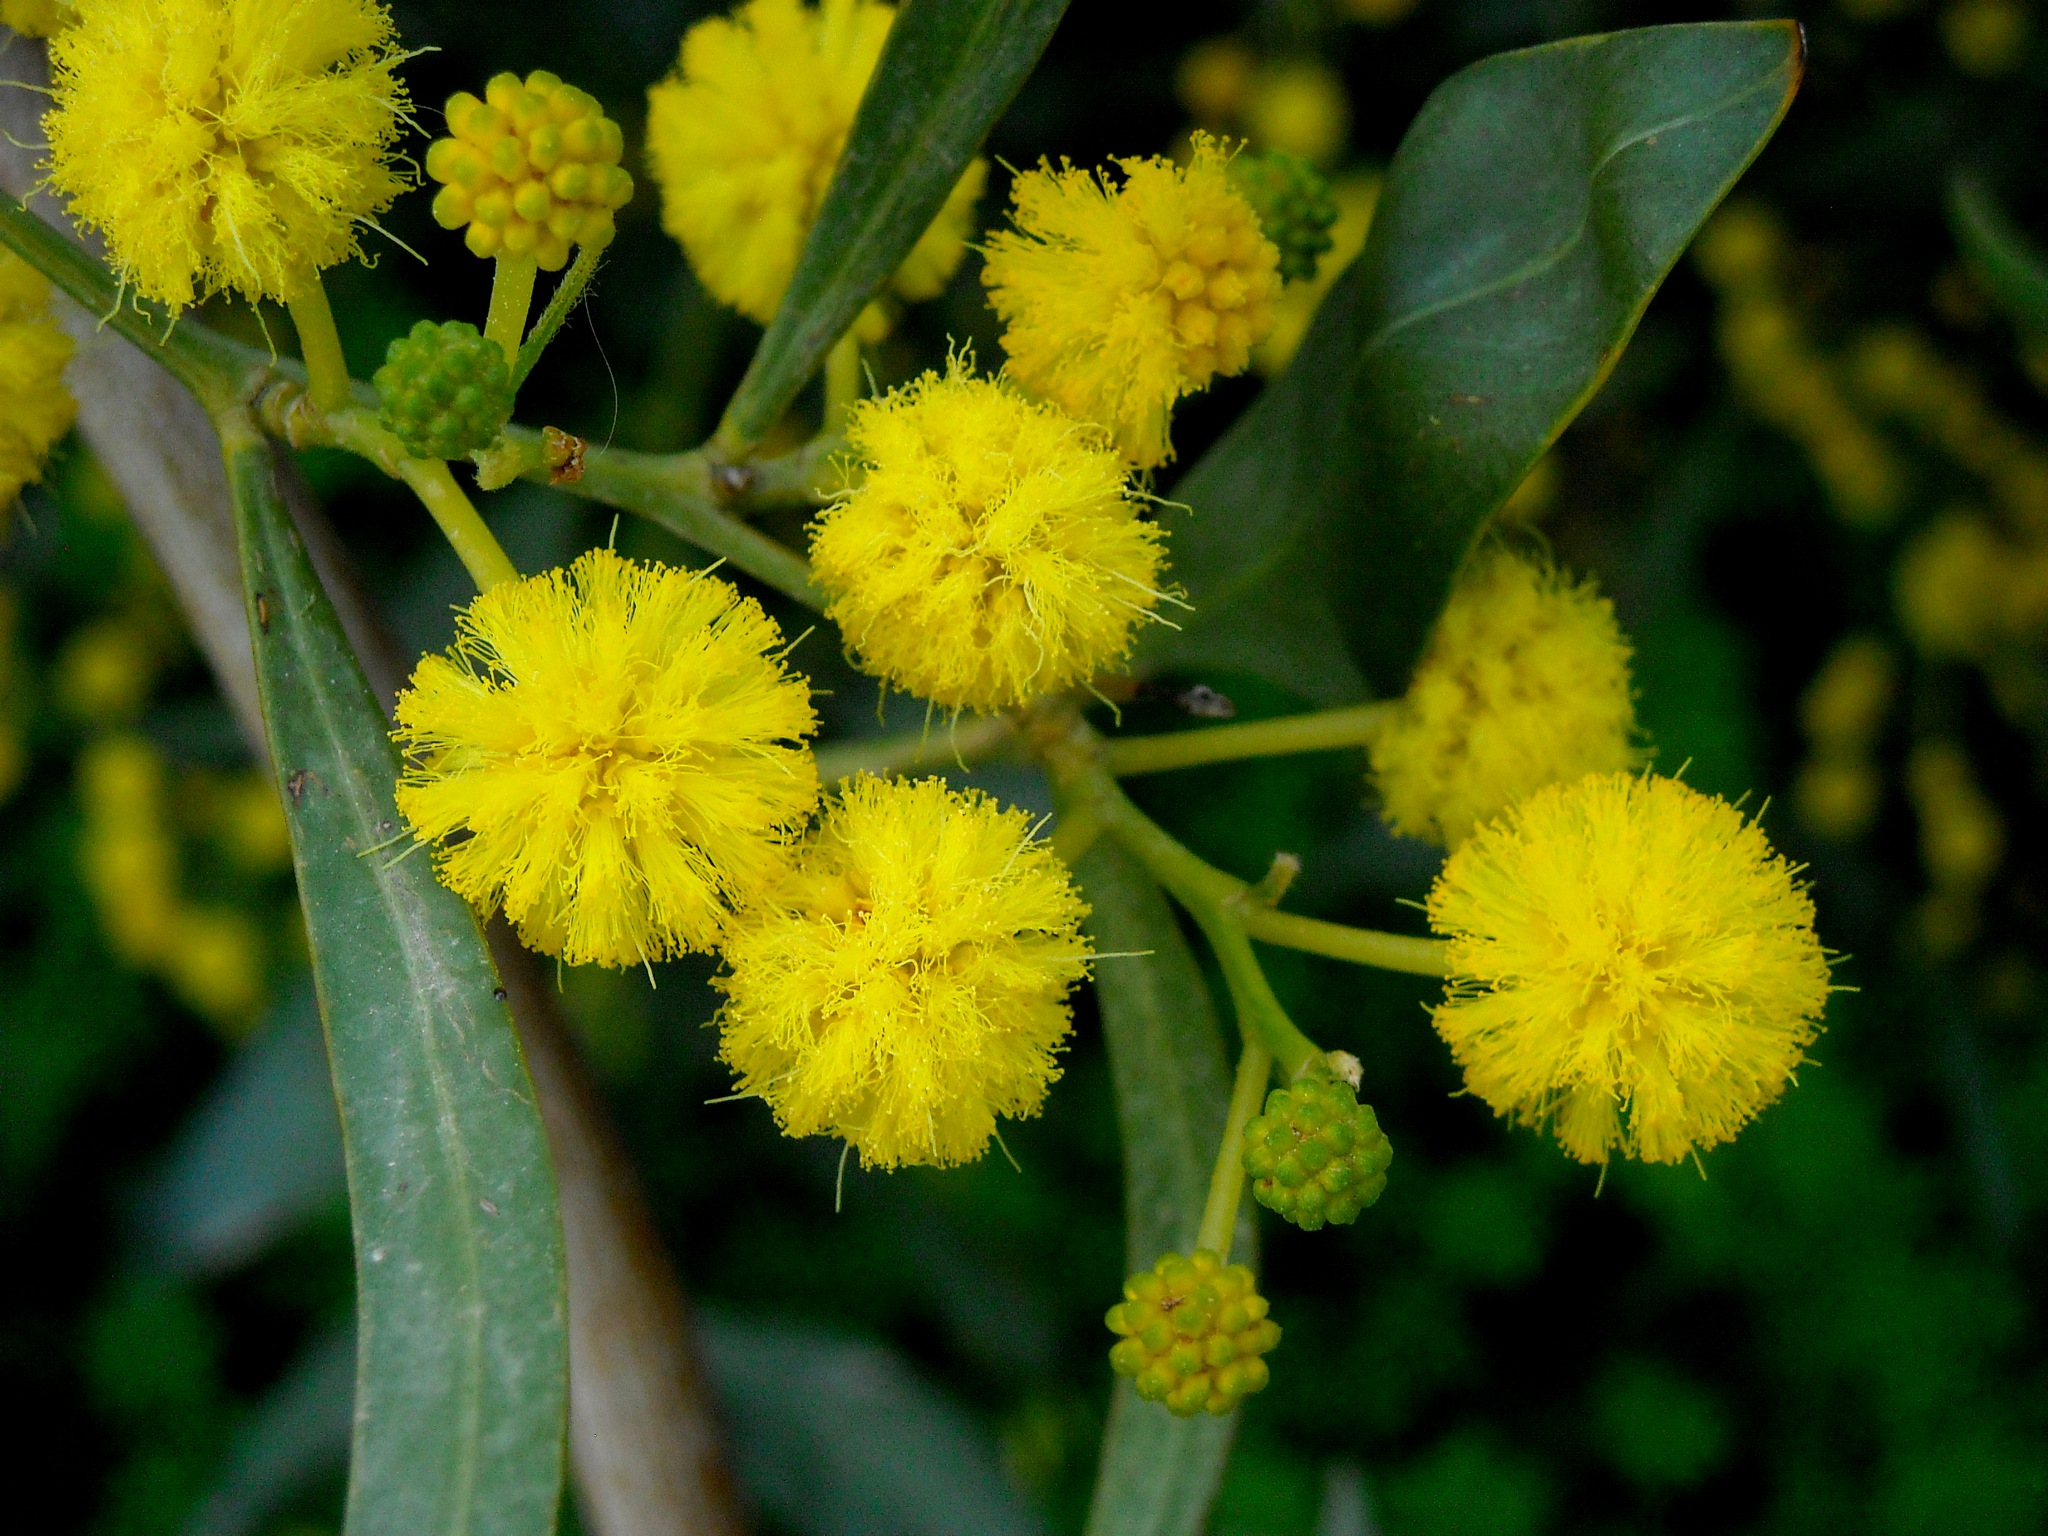 ACACIA CYANOPHYLLA FLOWERS, CLOSE UP by Akin Saner